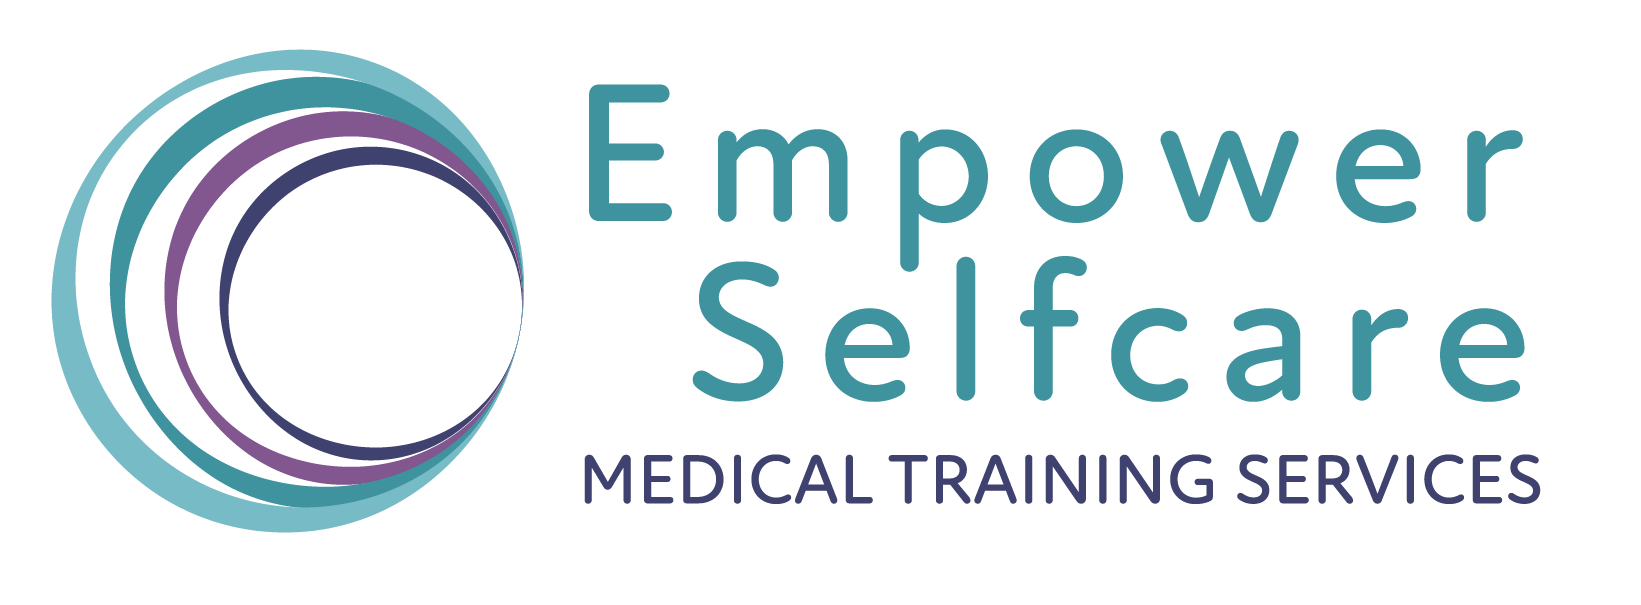 Medical Training Services